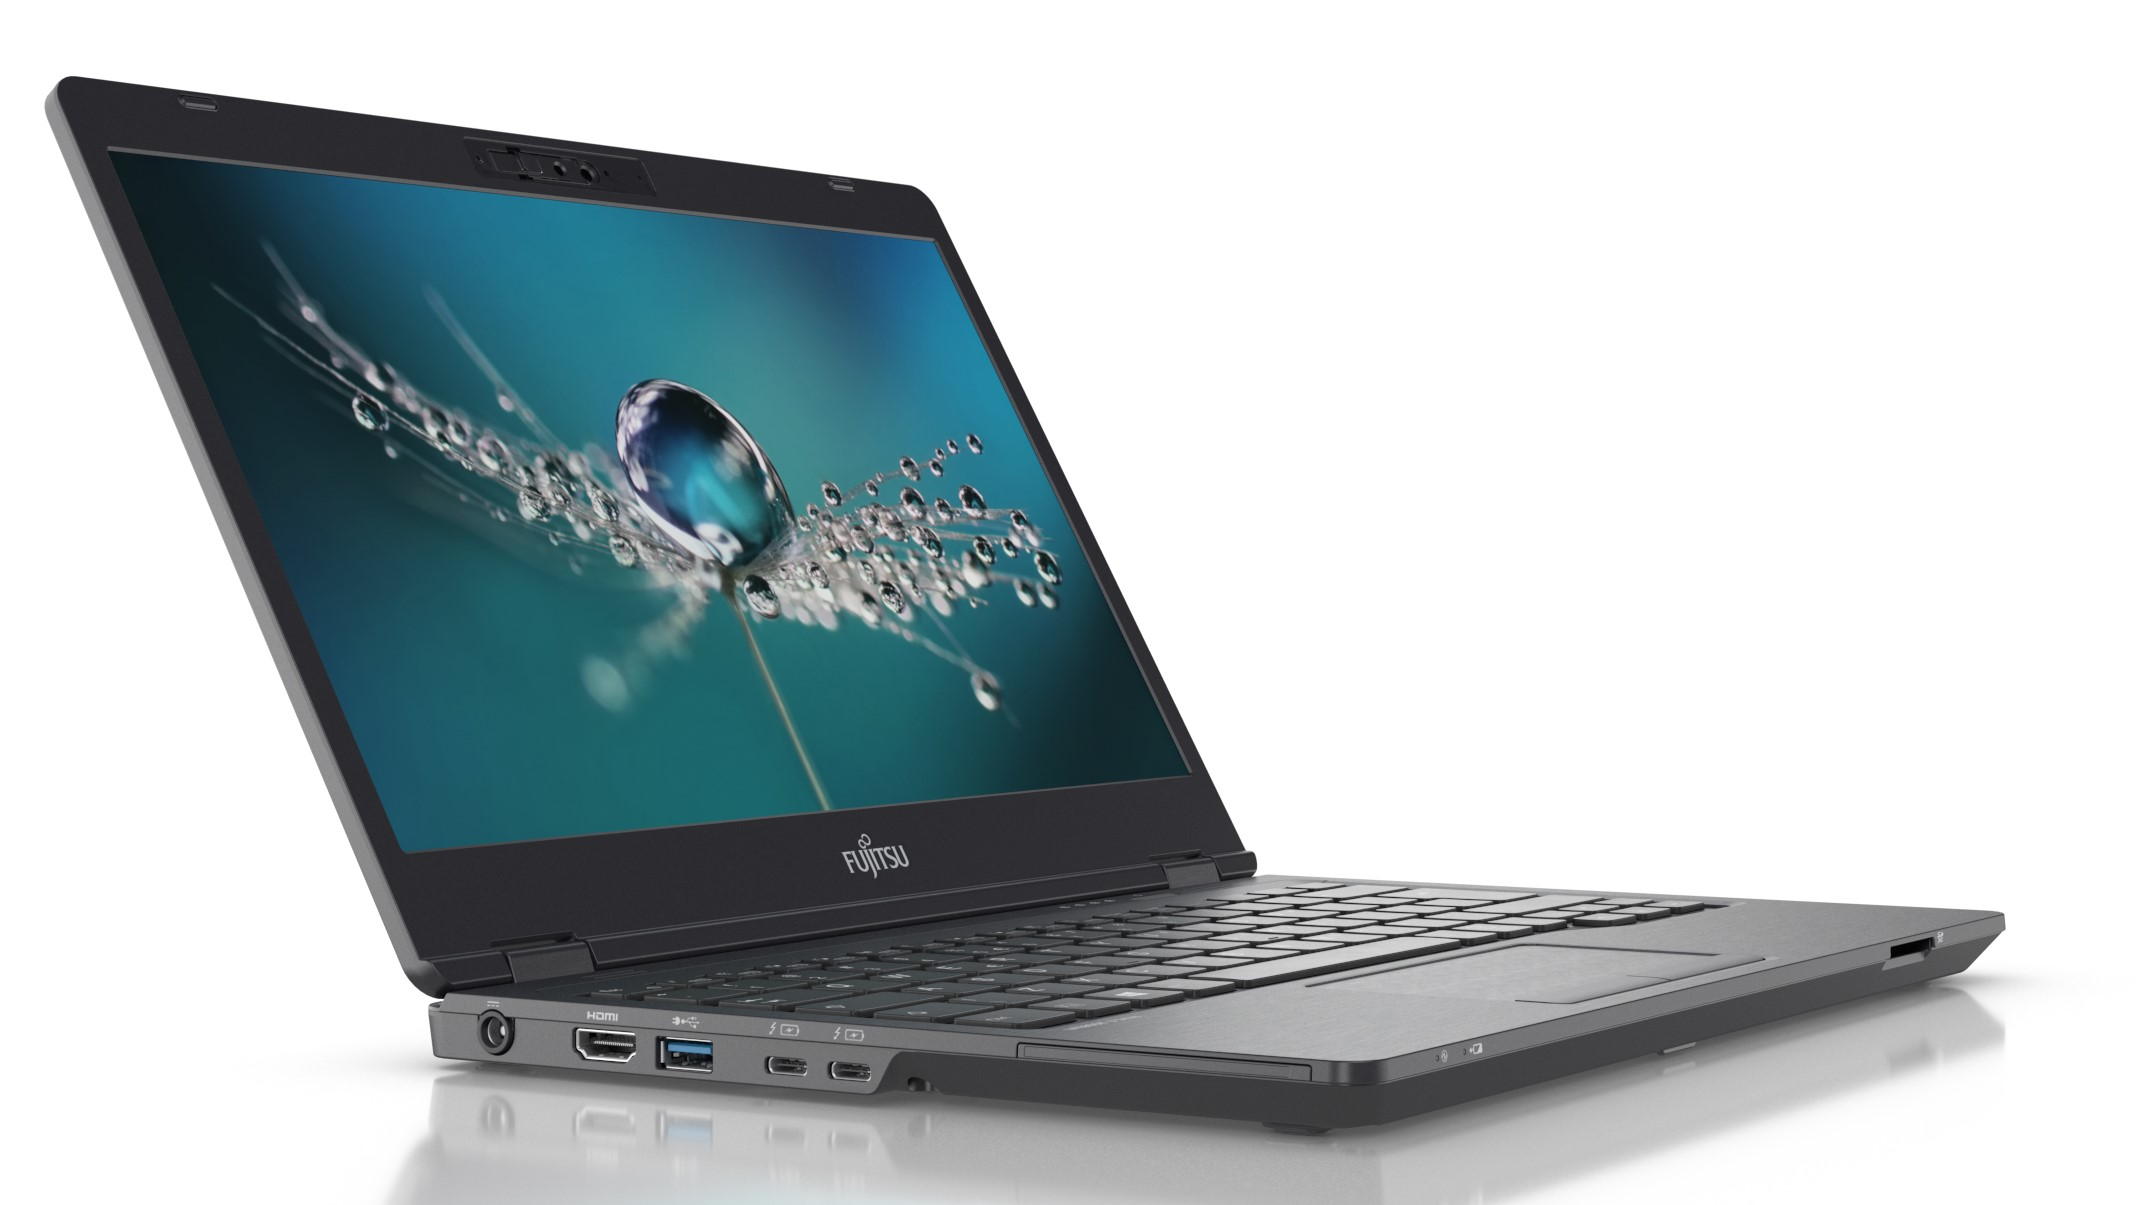 [Specs and Info] Fujitsu LifeBook U7311 – a breath of fresh air for the brand